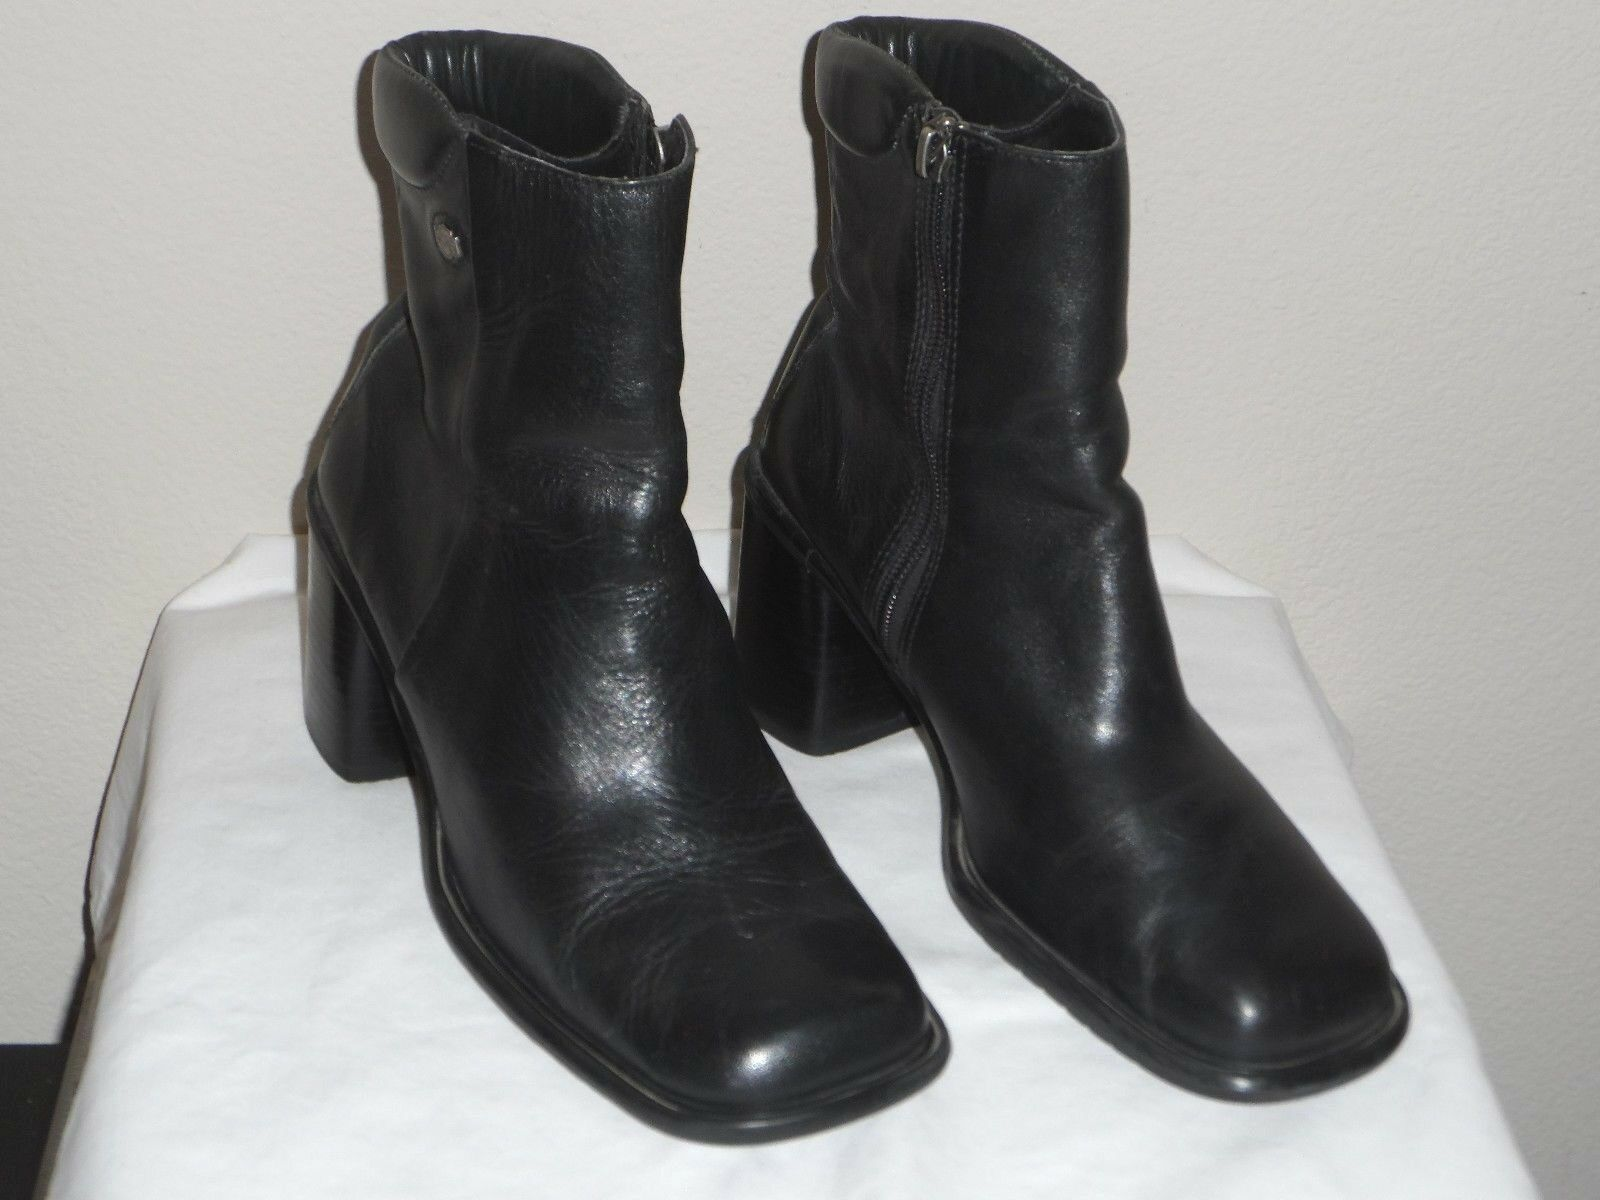 Harley-Davidson Womens Black Leather Size Ankle Boot Shoe - Size Leather 7M 9f1b46